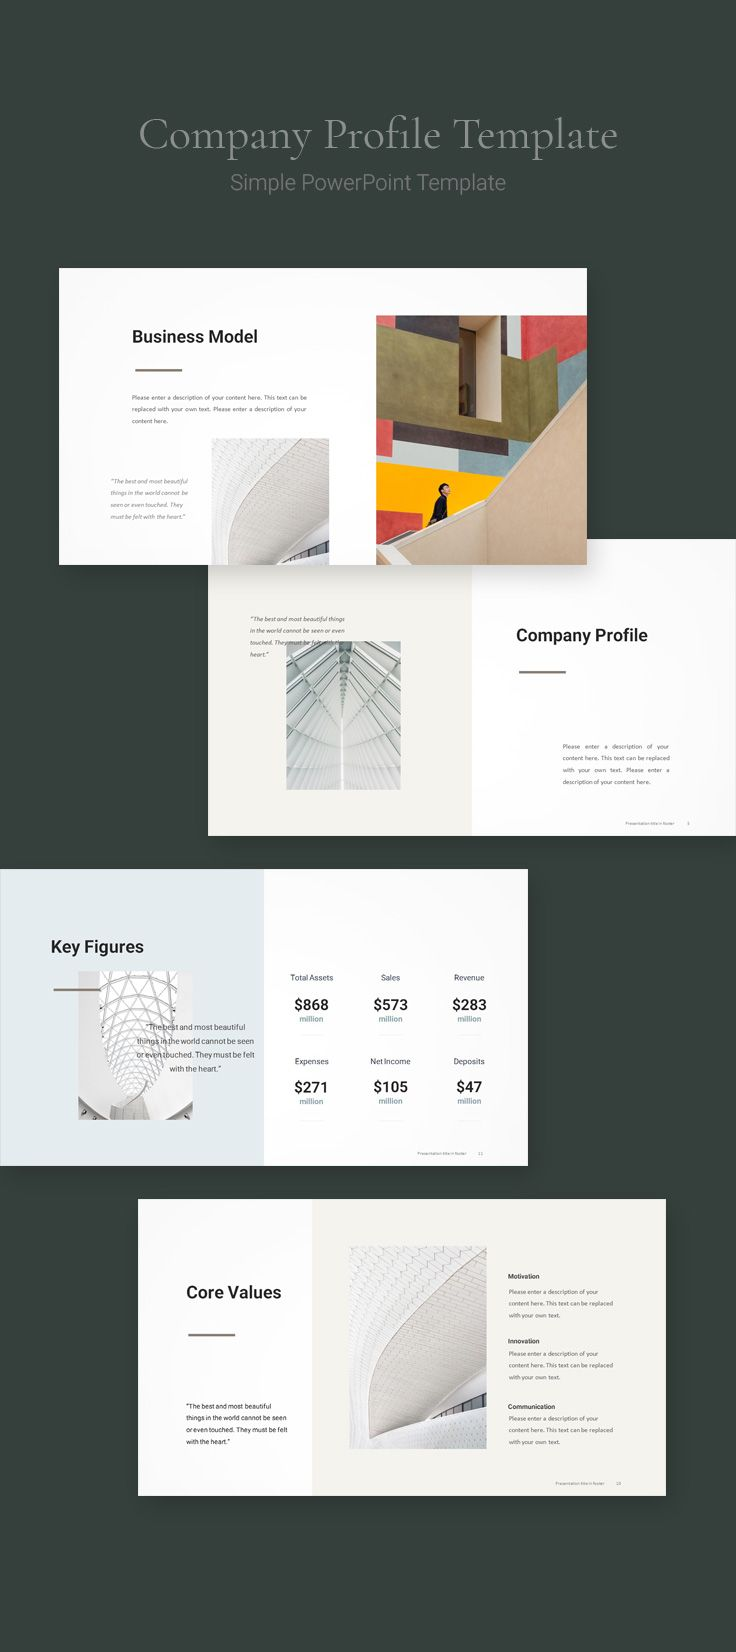 Simple Business Strategy Template Download Powerpoint Company Profile Design Company Profile Template Brochure Design Layouts